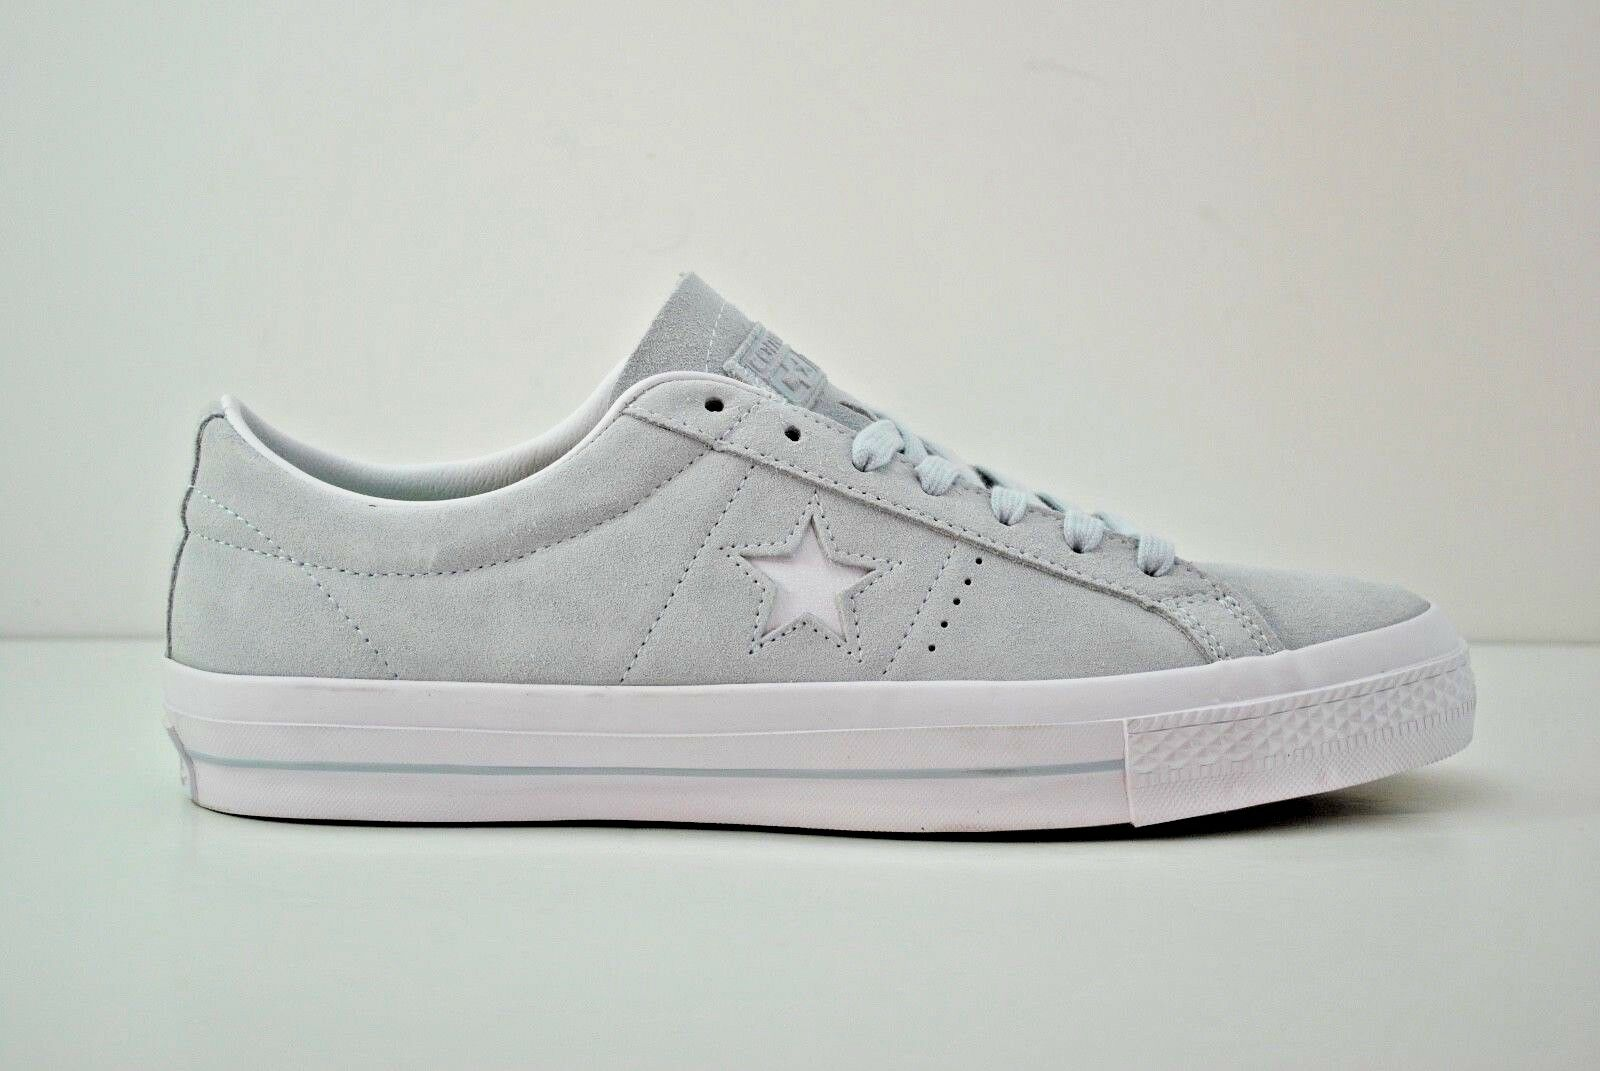 Mens Converse One Star Suede Ox shoes Size 9 - 13 Poplar bluee White 153963C